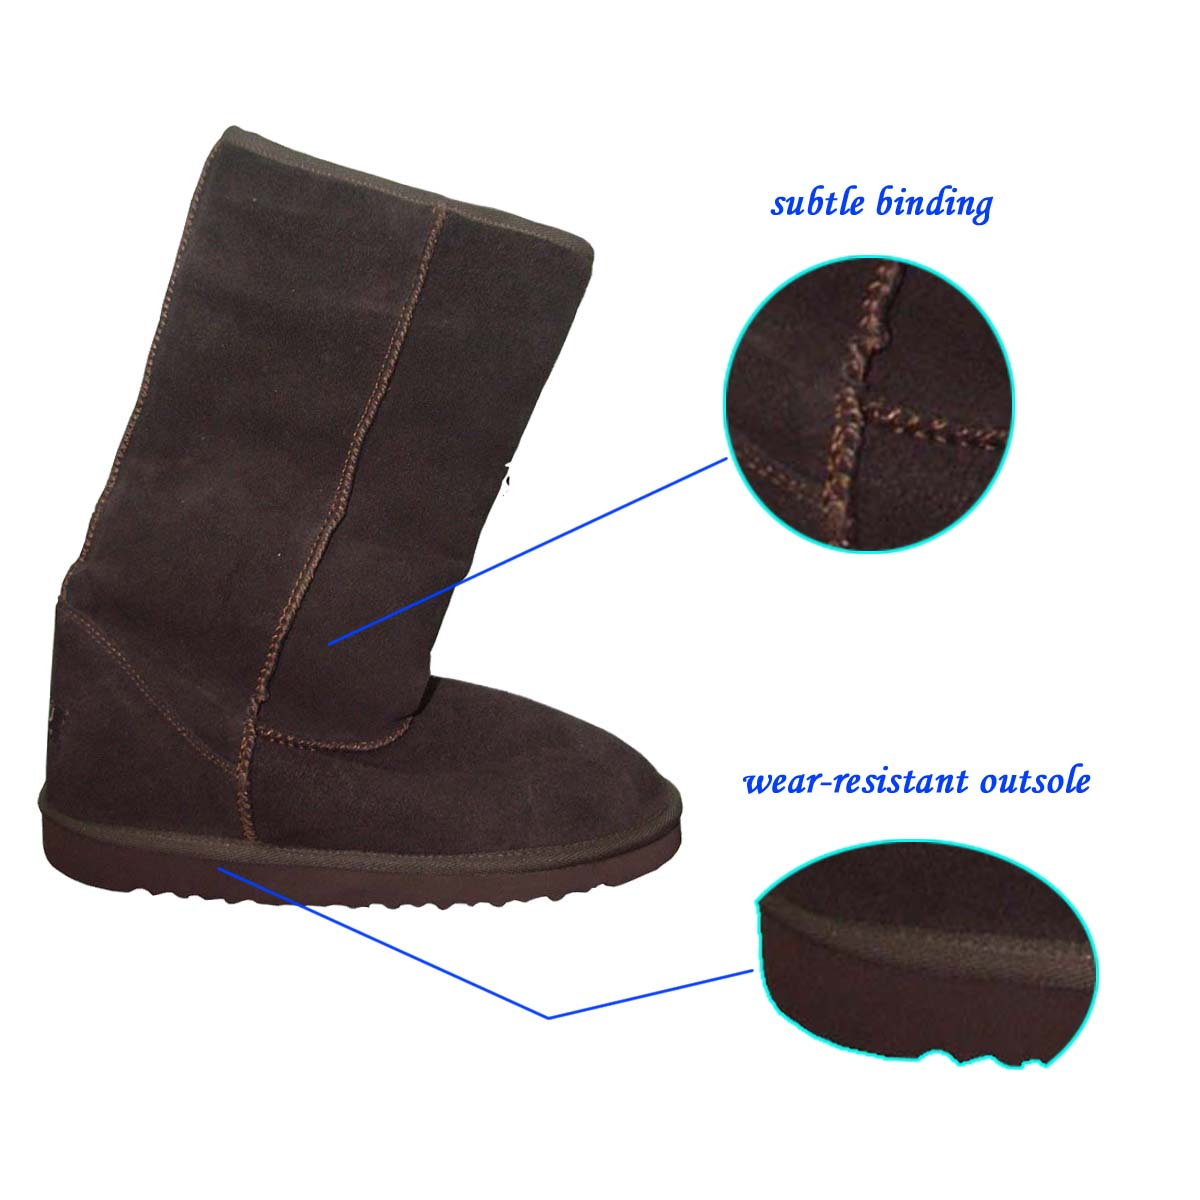 Latest Designed Classic Warm Camel woman Snow Boots with Flexible EVA Outsole from Chinese Market